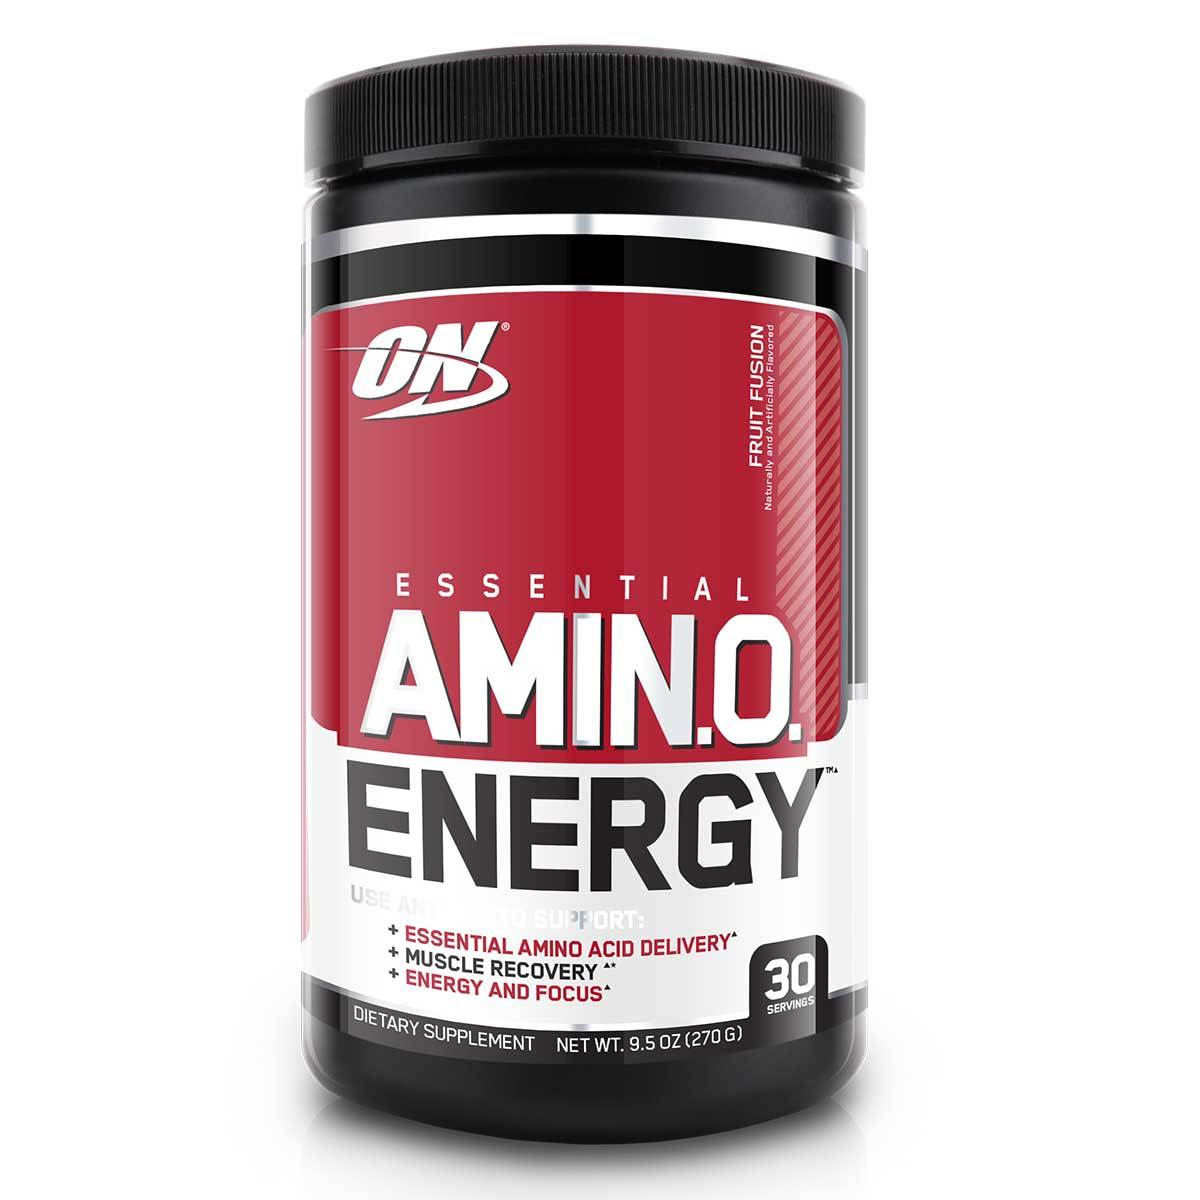 Amino Energy Pre Workout Drink 30 Servings Optimum Nutrition